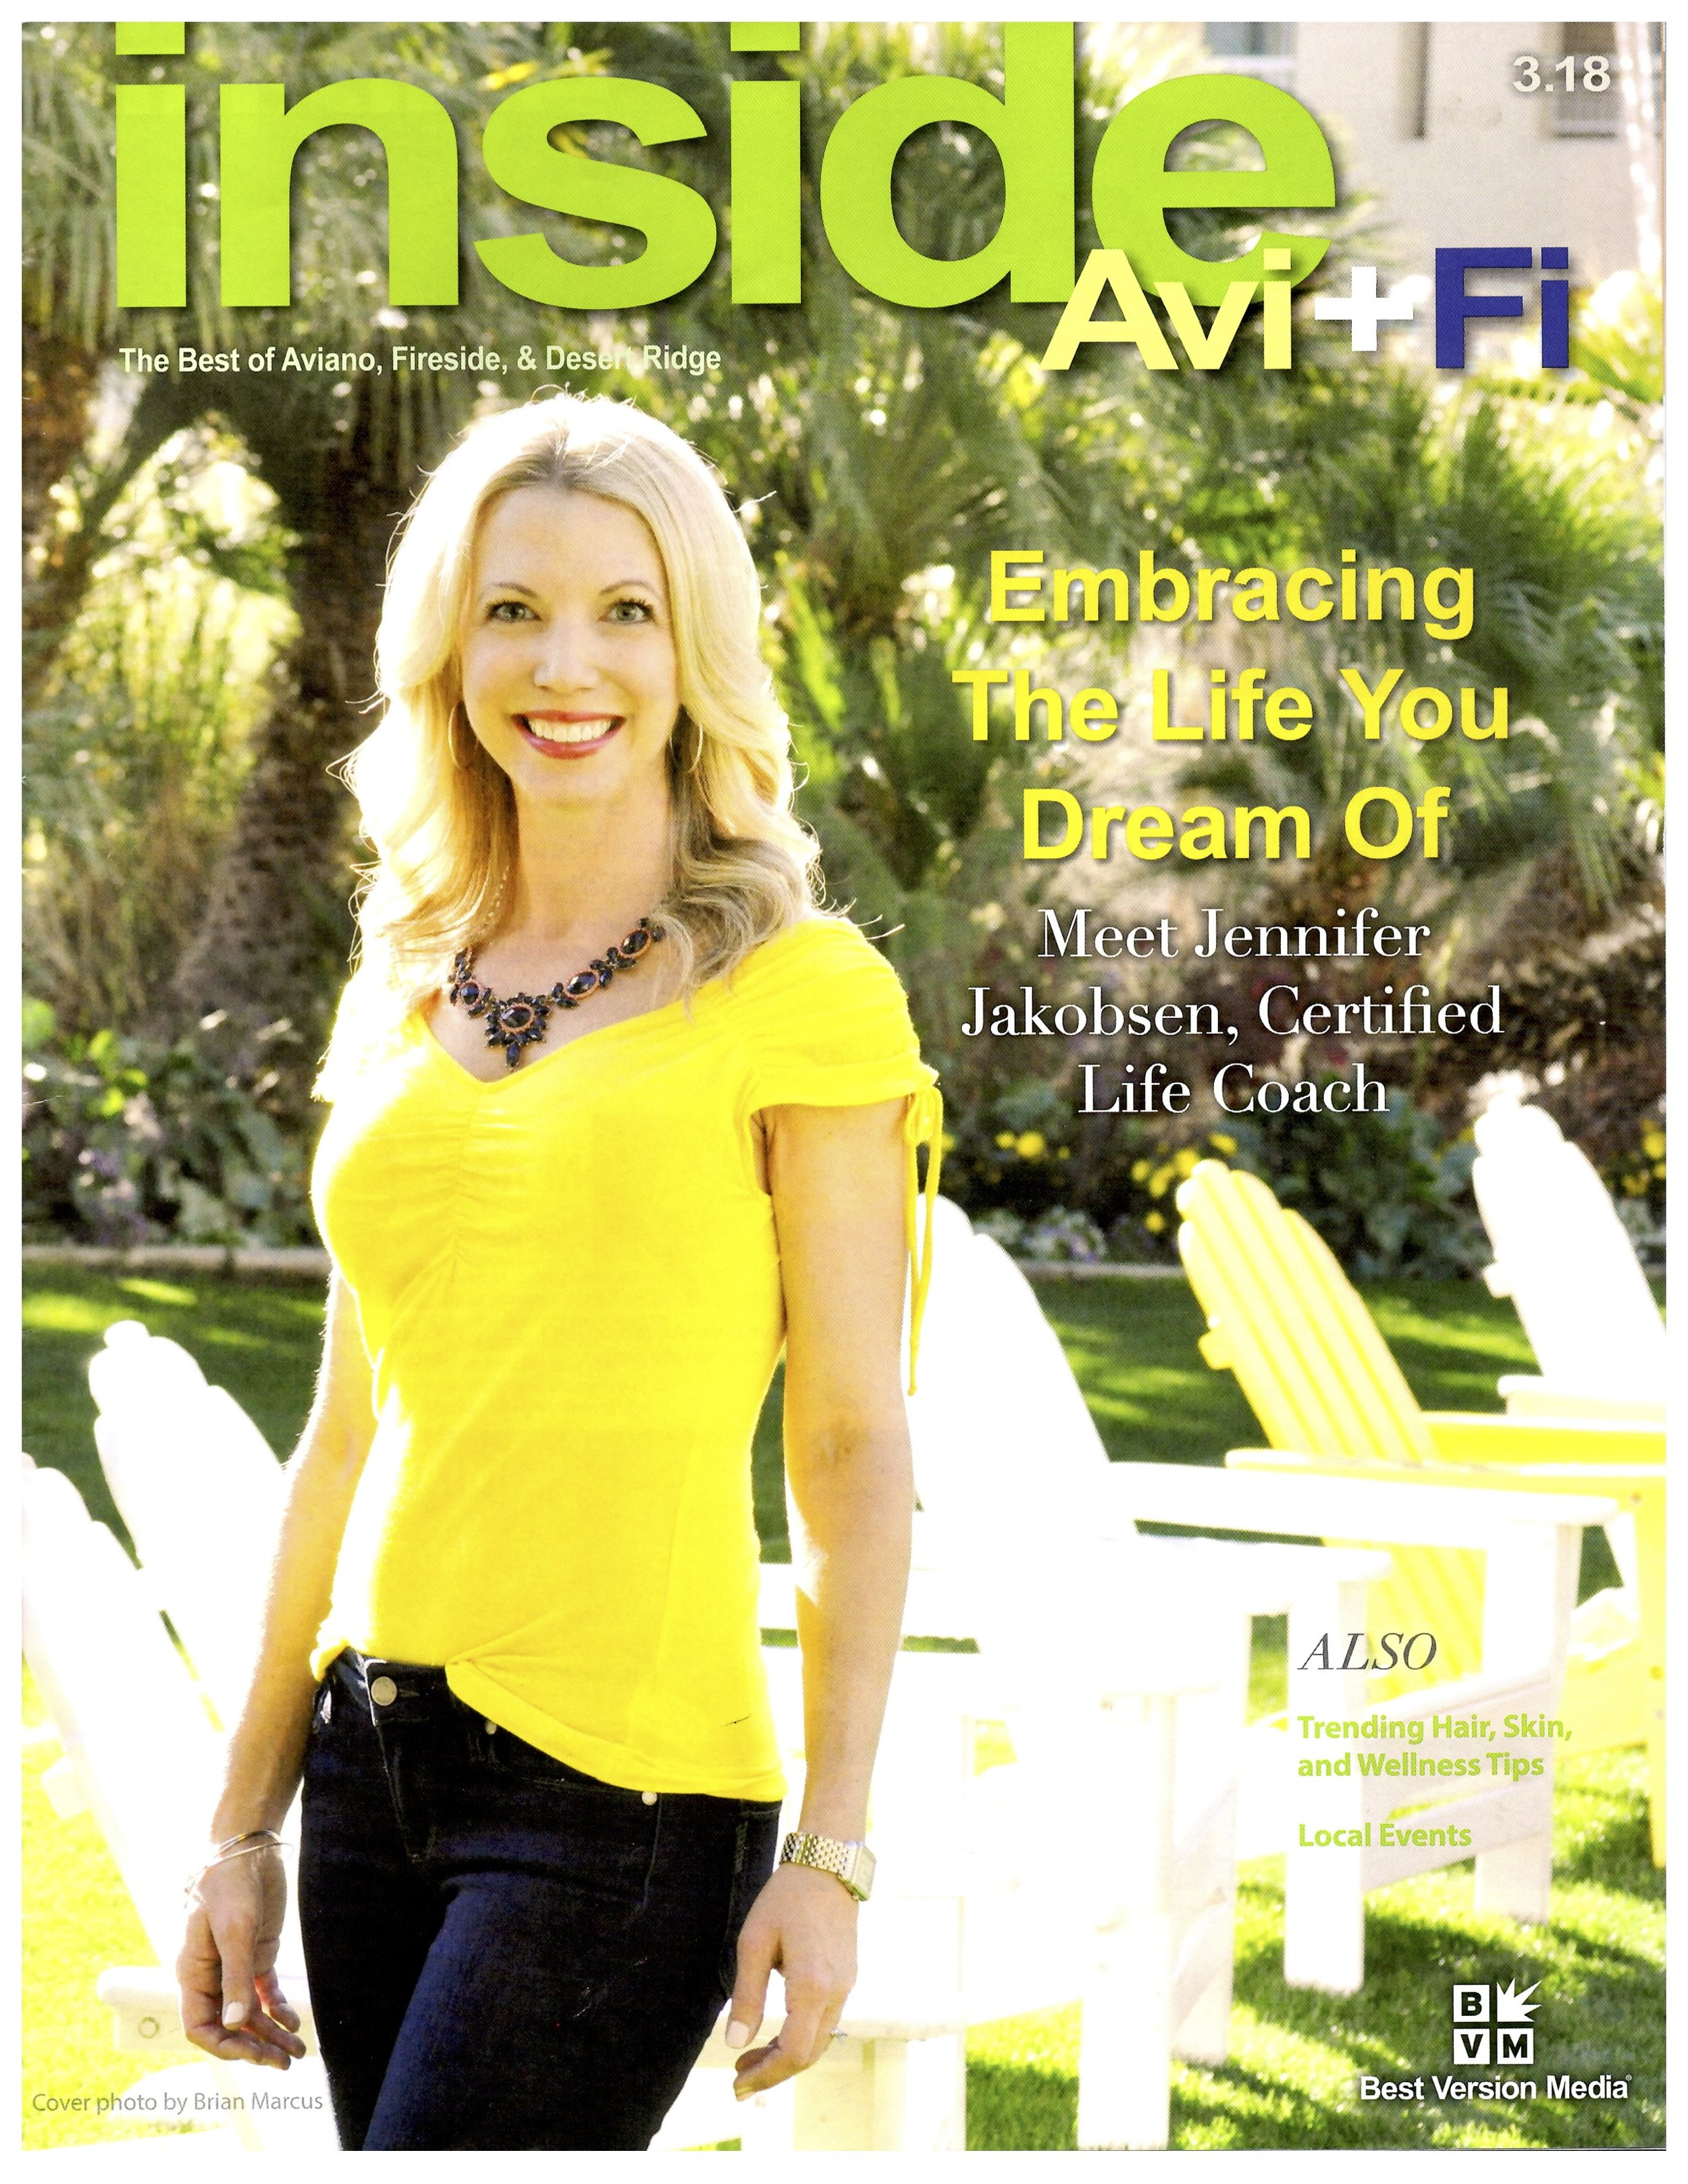 My family and I were featured in Avi+Fi magazine! -